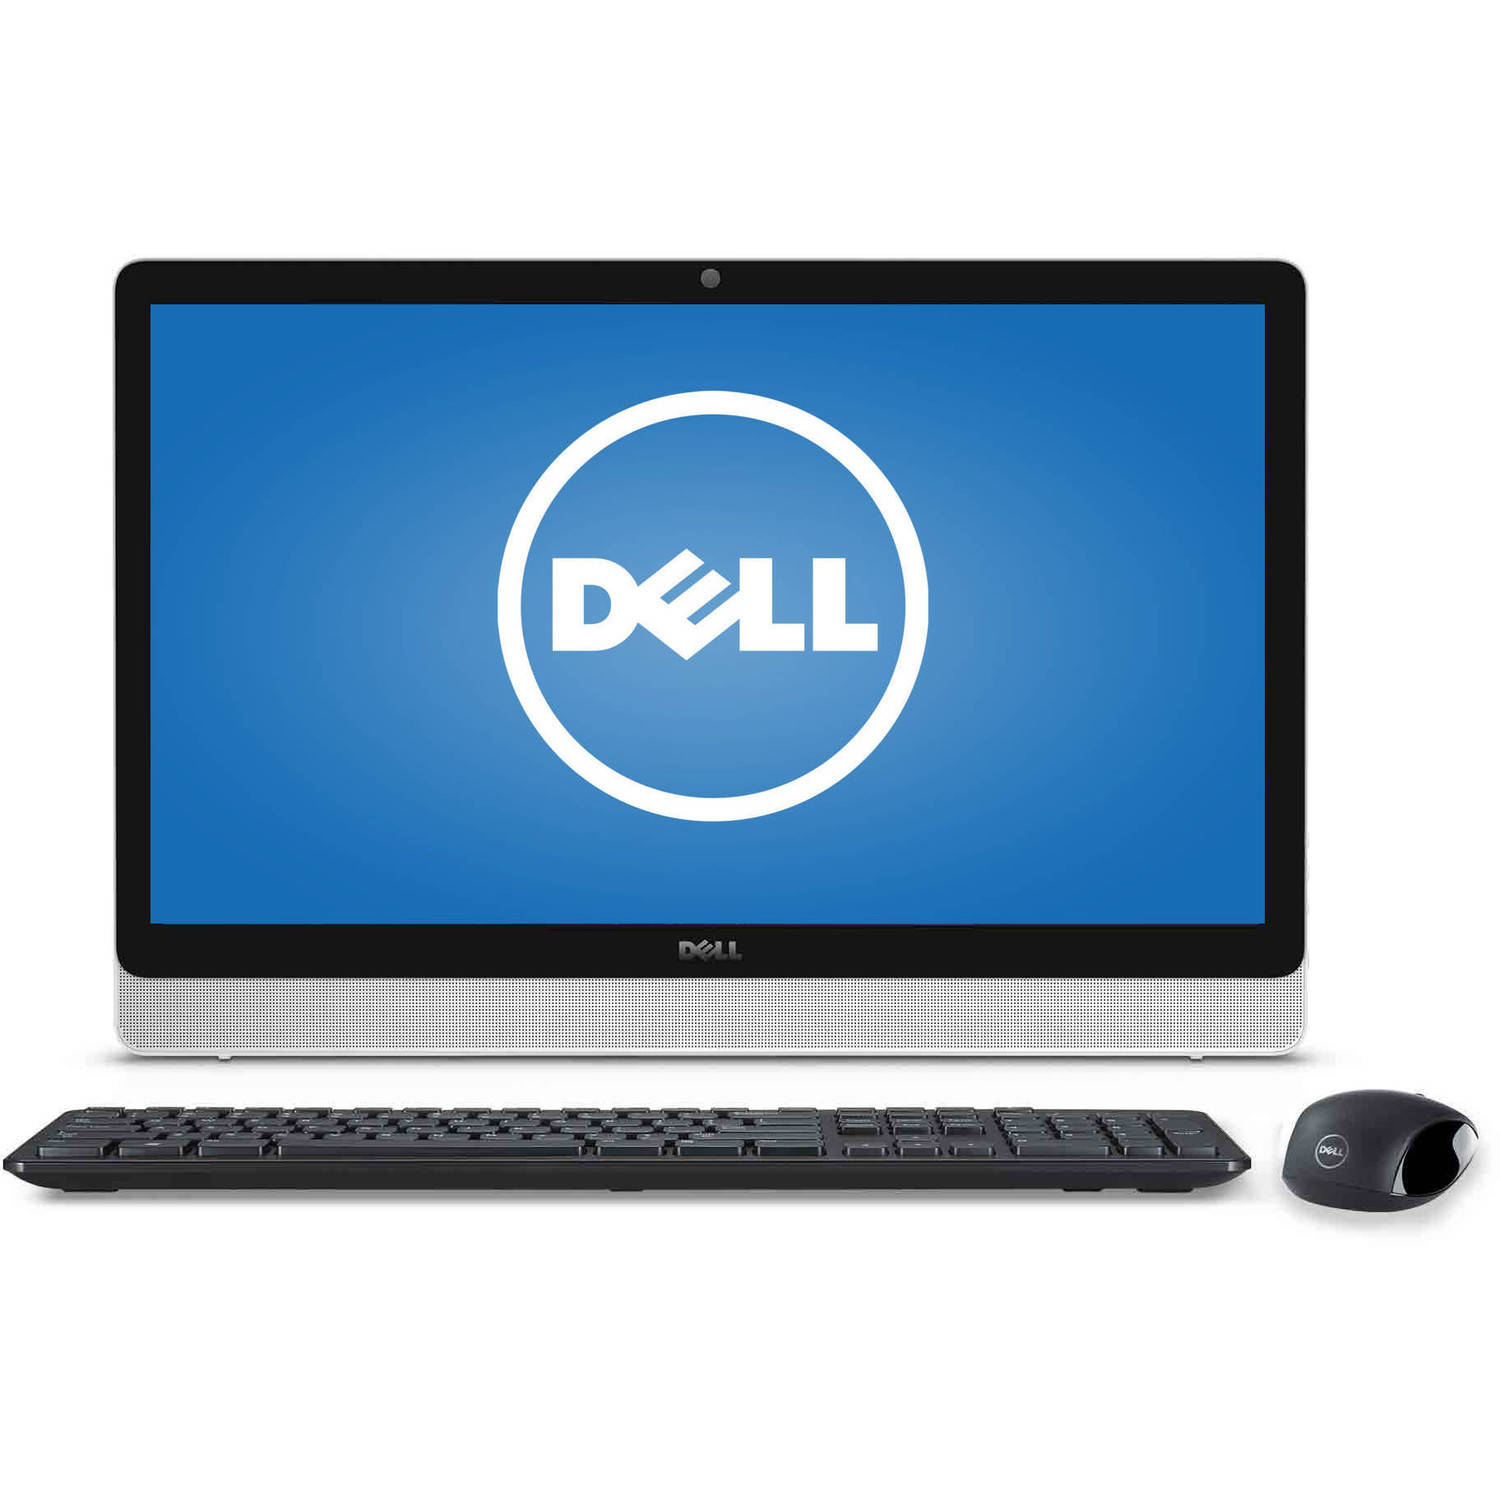 Hp Desktop  puter Windows Xp together with Dell a51r2 1172slv alienware51 i7 5820k 8gb 2tb gtx 980 windows 8 1 further Dell Optiplex 790 I7 Tower Windows 7 Home  puter furthermore Windows Xp Dell Optiplex 330 Tower Intel Celeron Pc  puter 2gb Ram 250gb Manchester 1516303 14 together with Hp  paq 8000 Elite  puter Pc Dual Core Windows 7 148324 14. on dell tower hard drive location